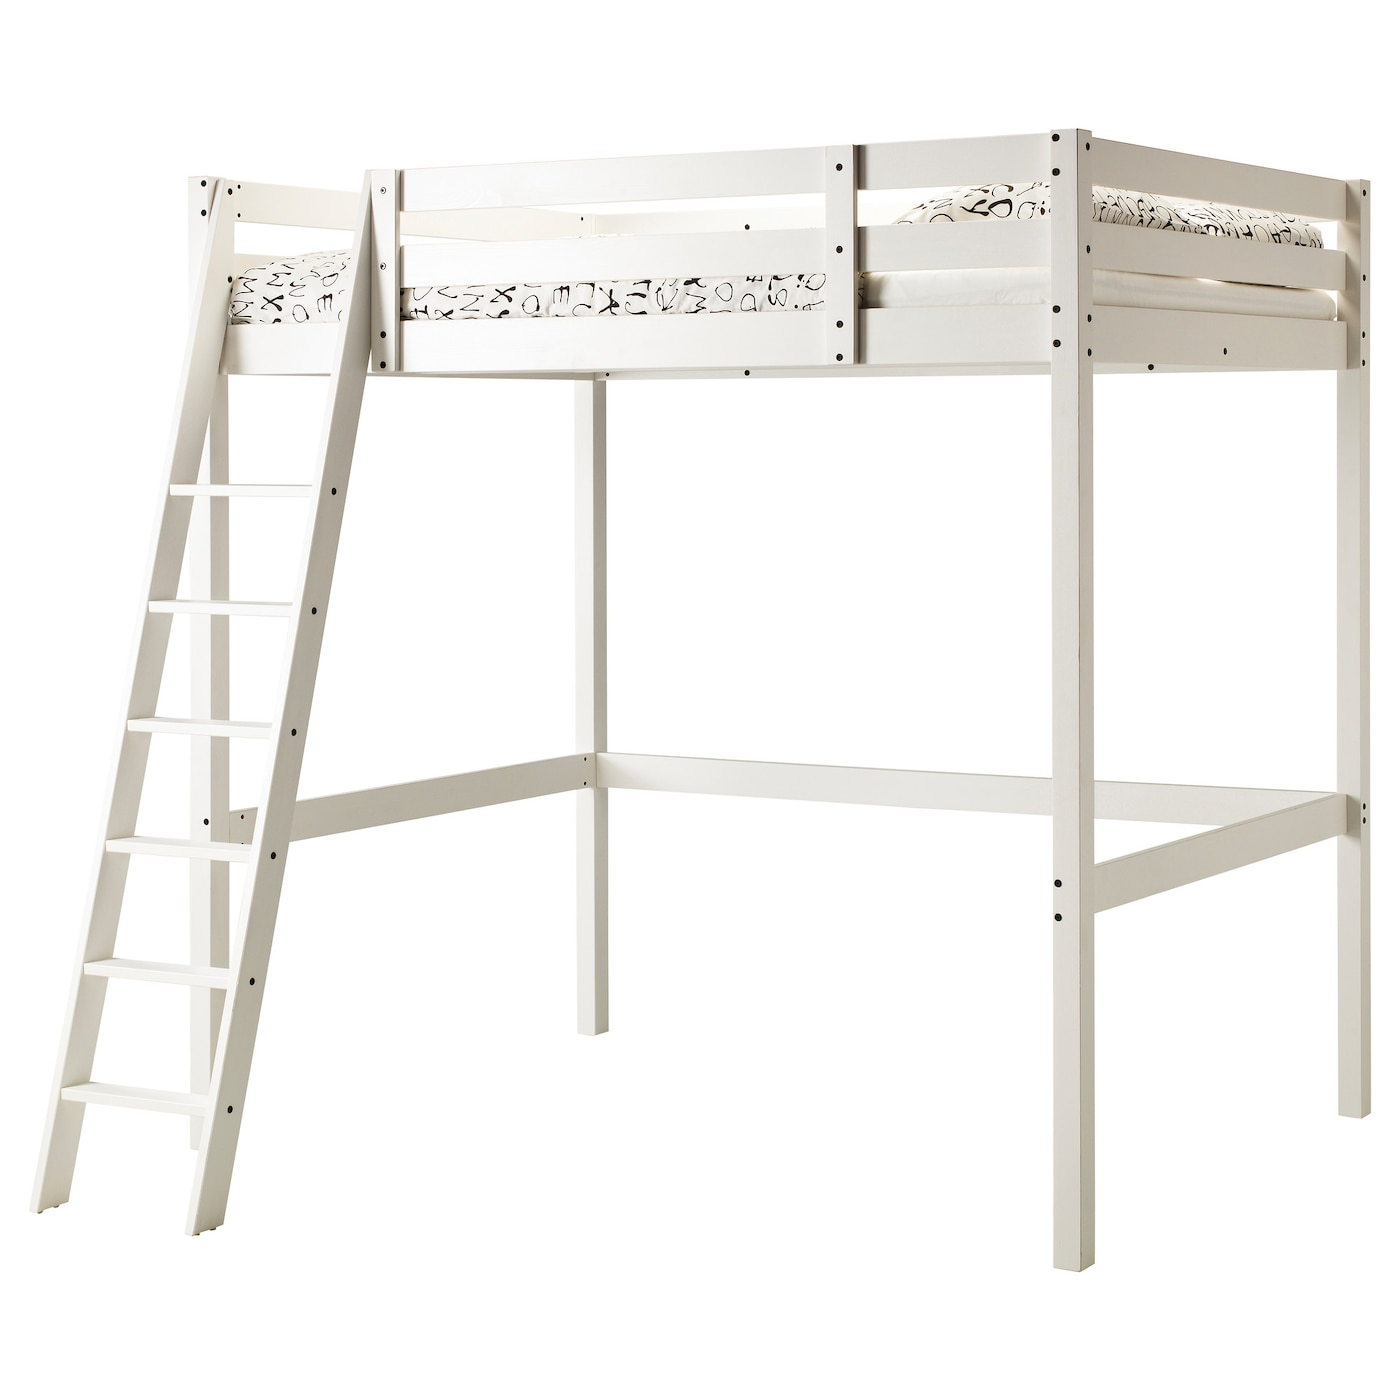 stor loft bed frame white stain 140 x 200 cm ikea. Black Bedroom Furniture Sets. Home Design Ideas